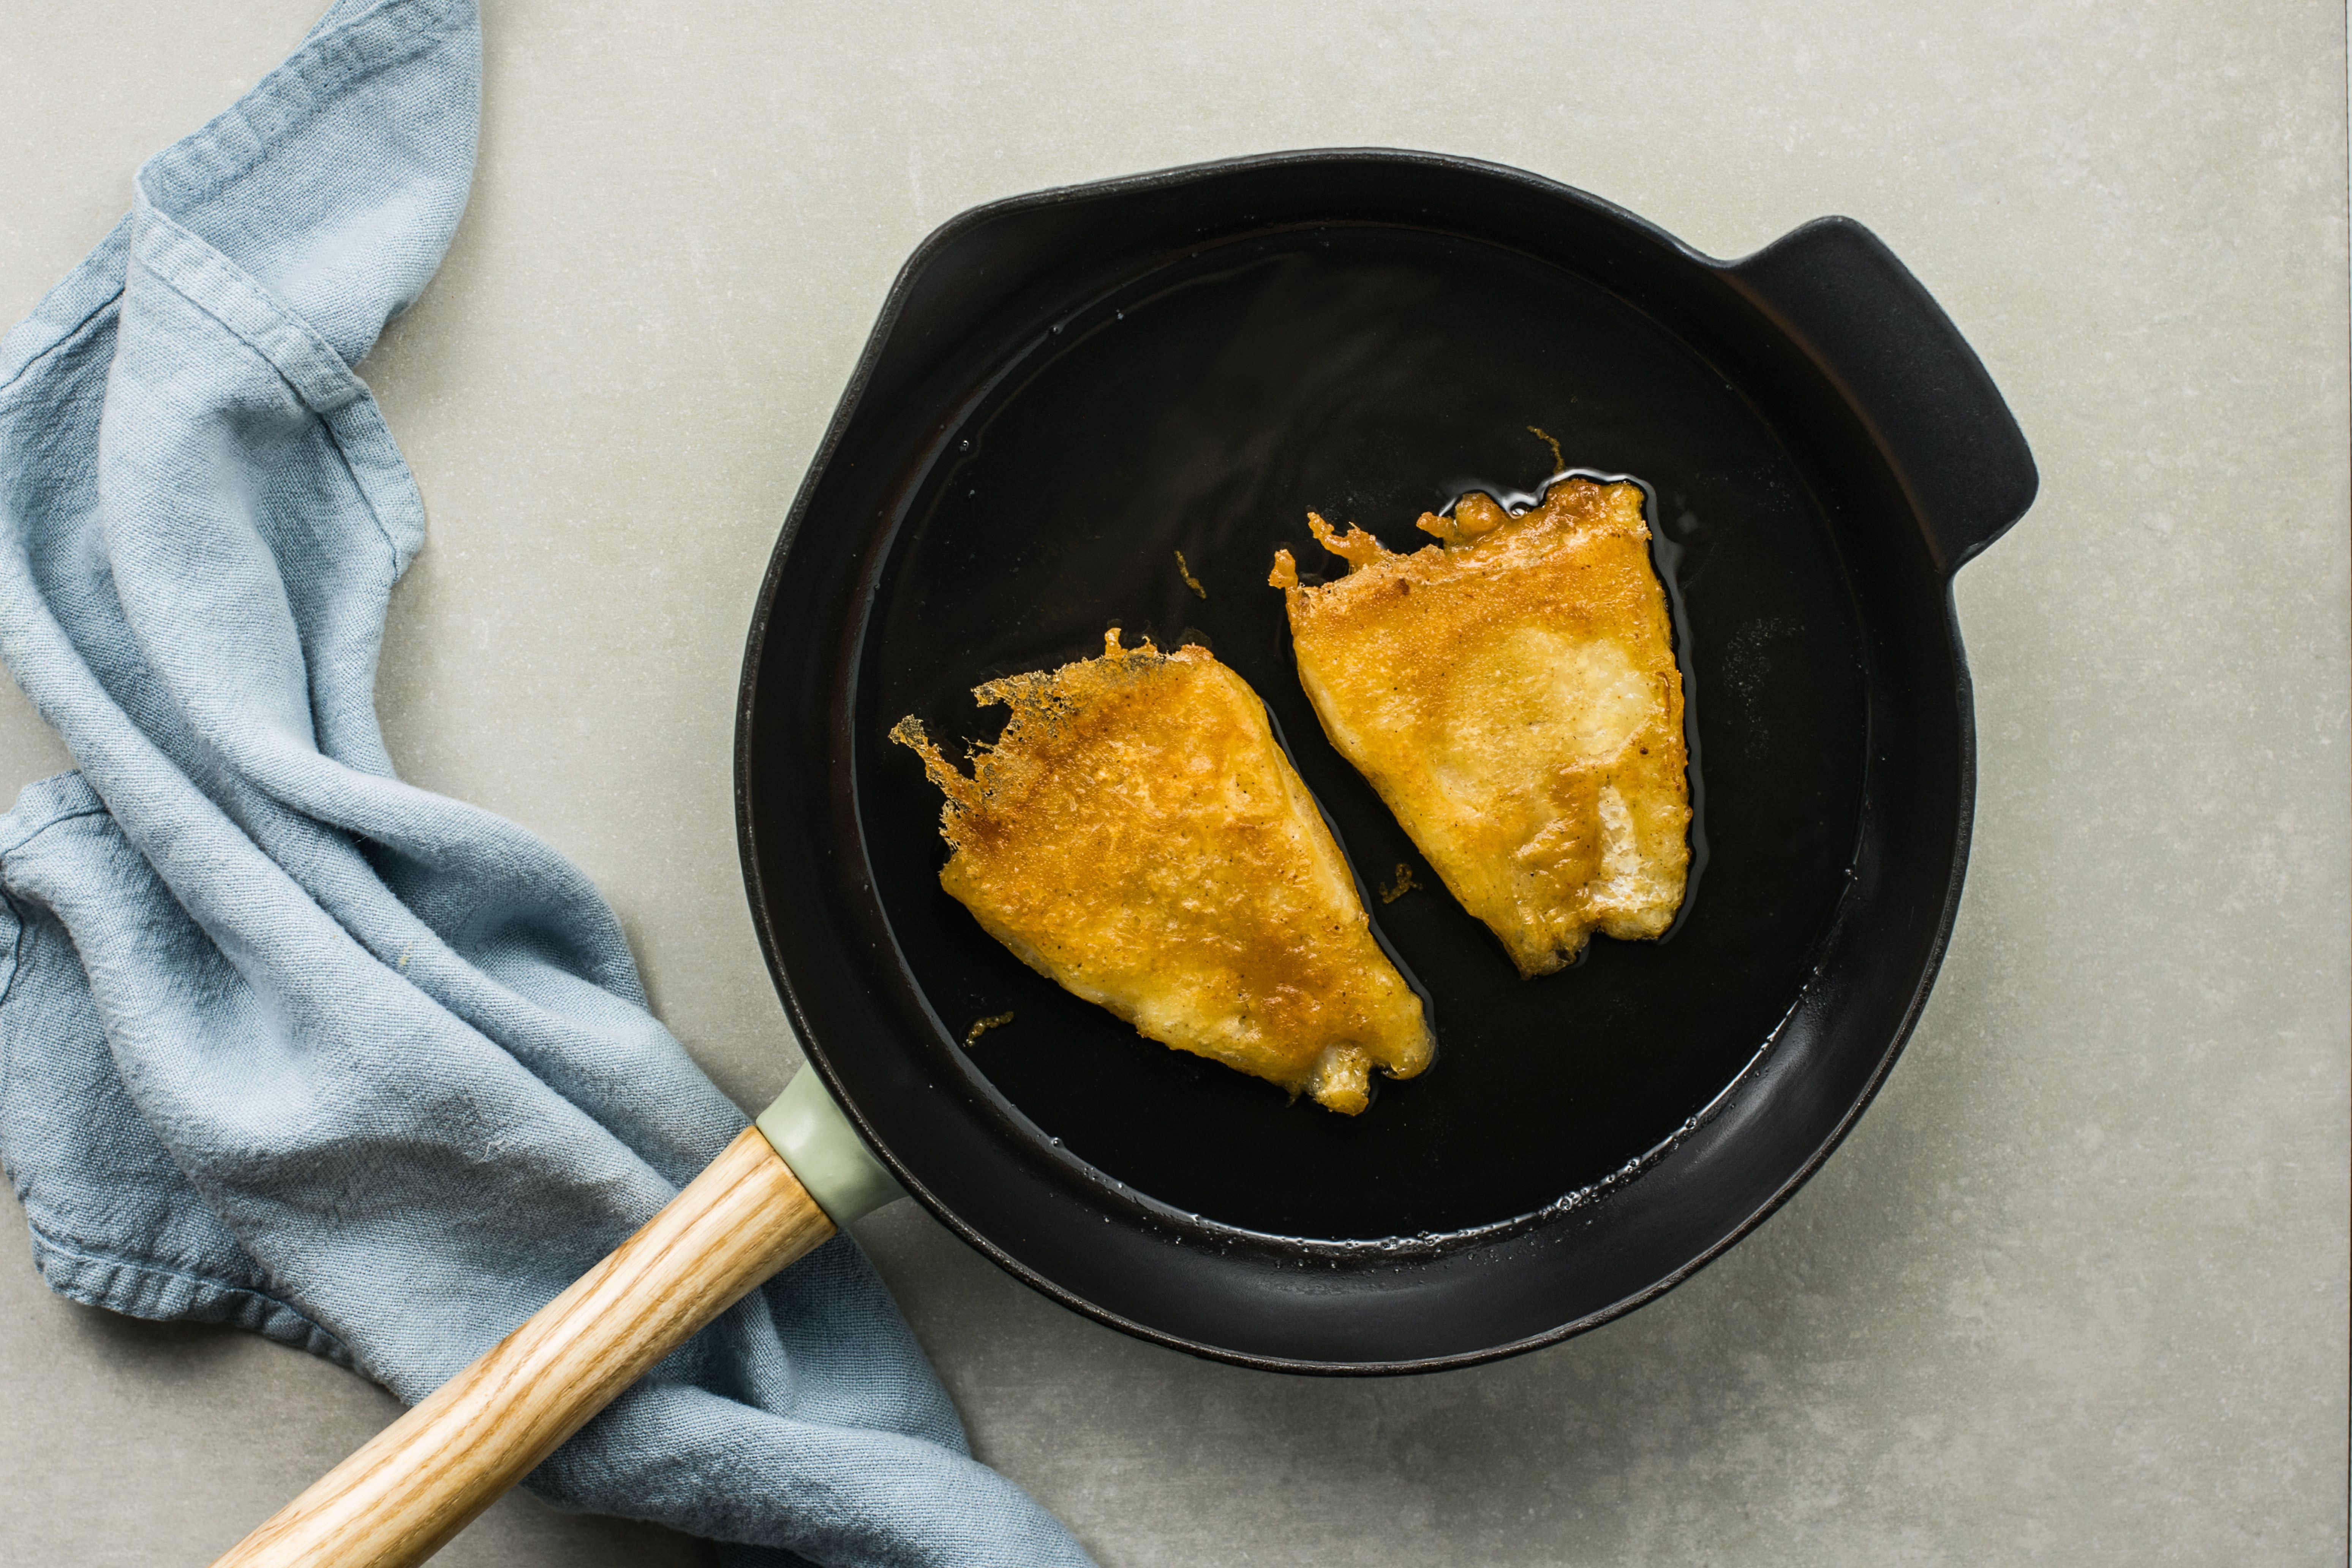 Gluten-free beer-battered fried fish cooking in the pan